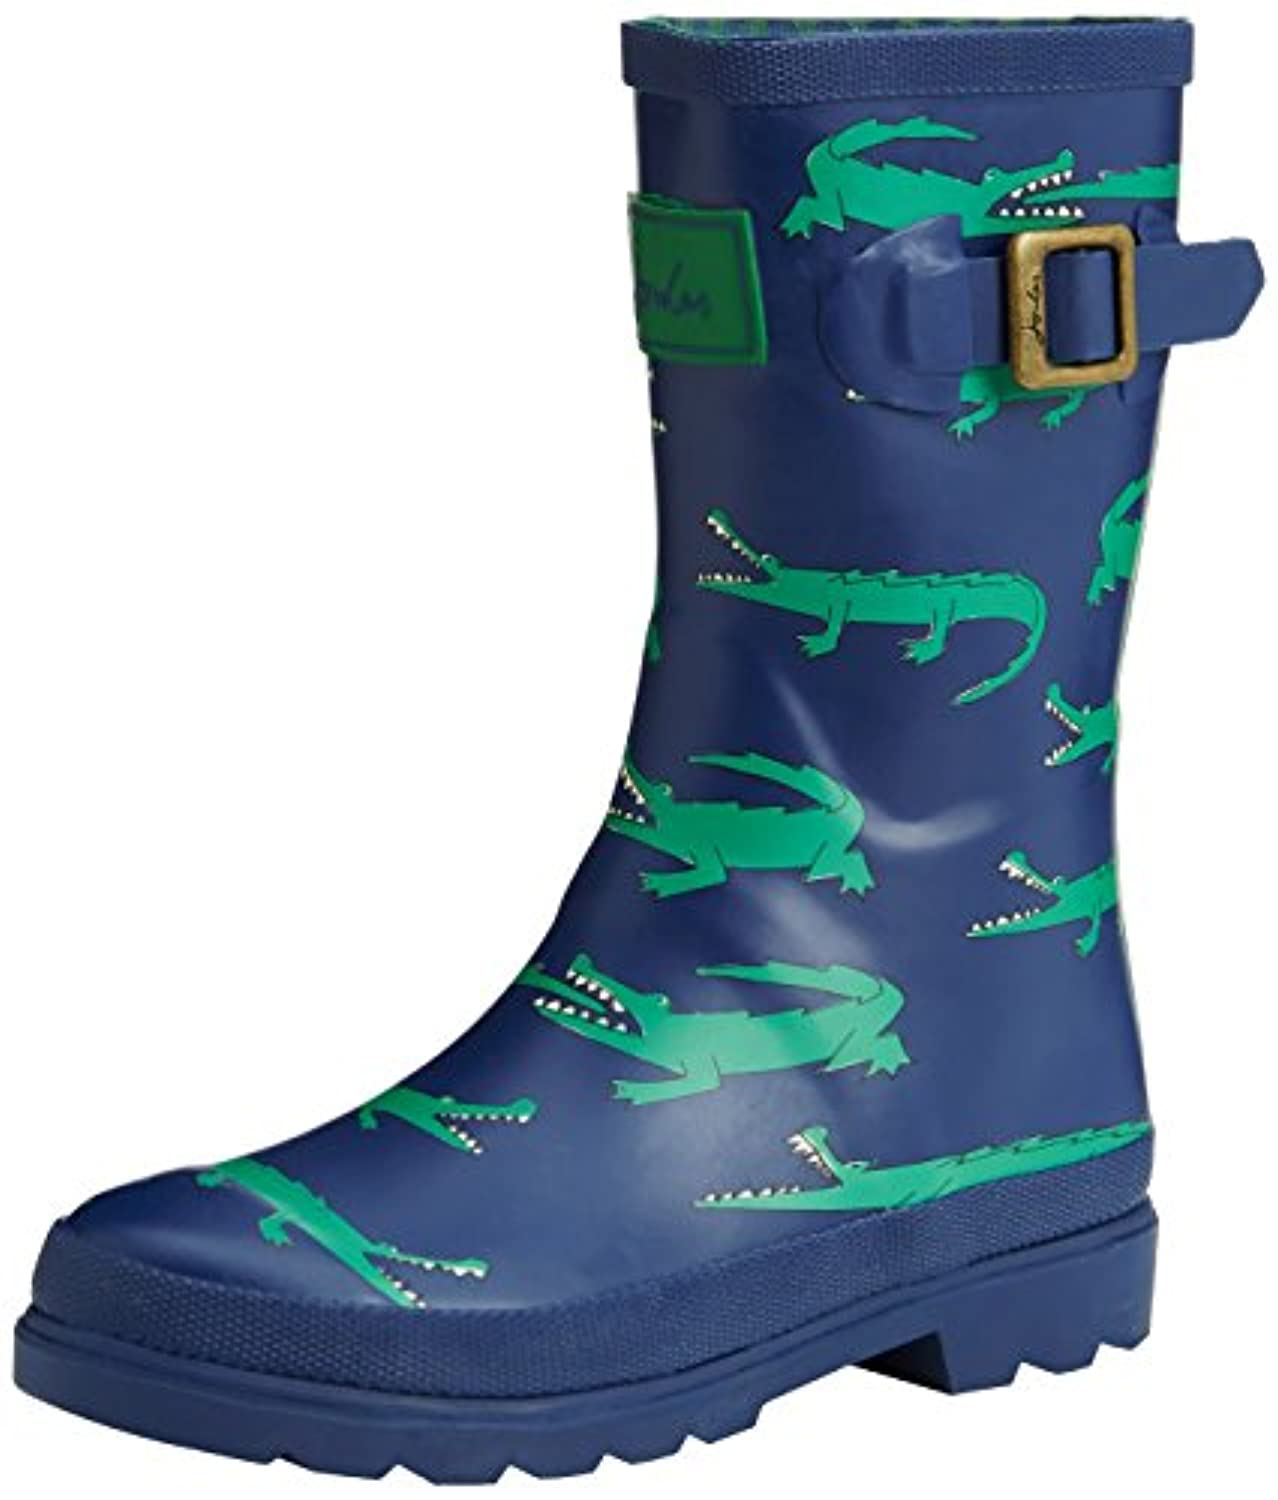 Joules Printed Welly, Boys' Rain Boots, Blue (Navy Stripe), 8 Child UK (25 EU)